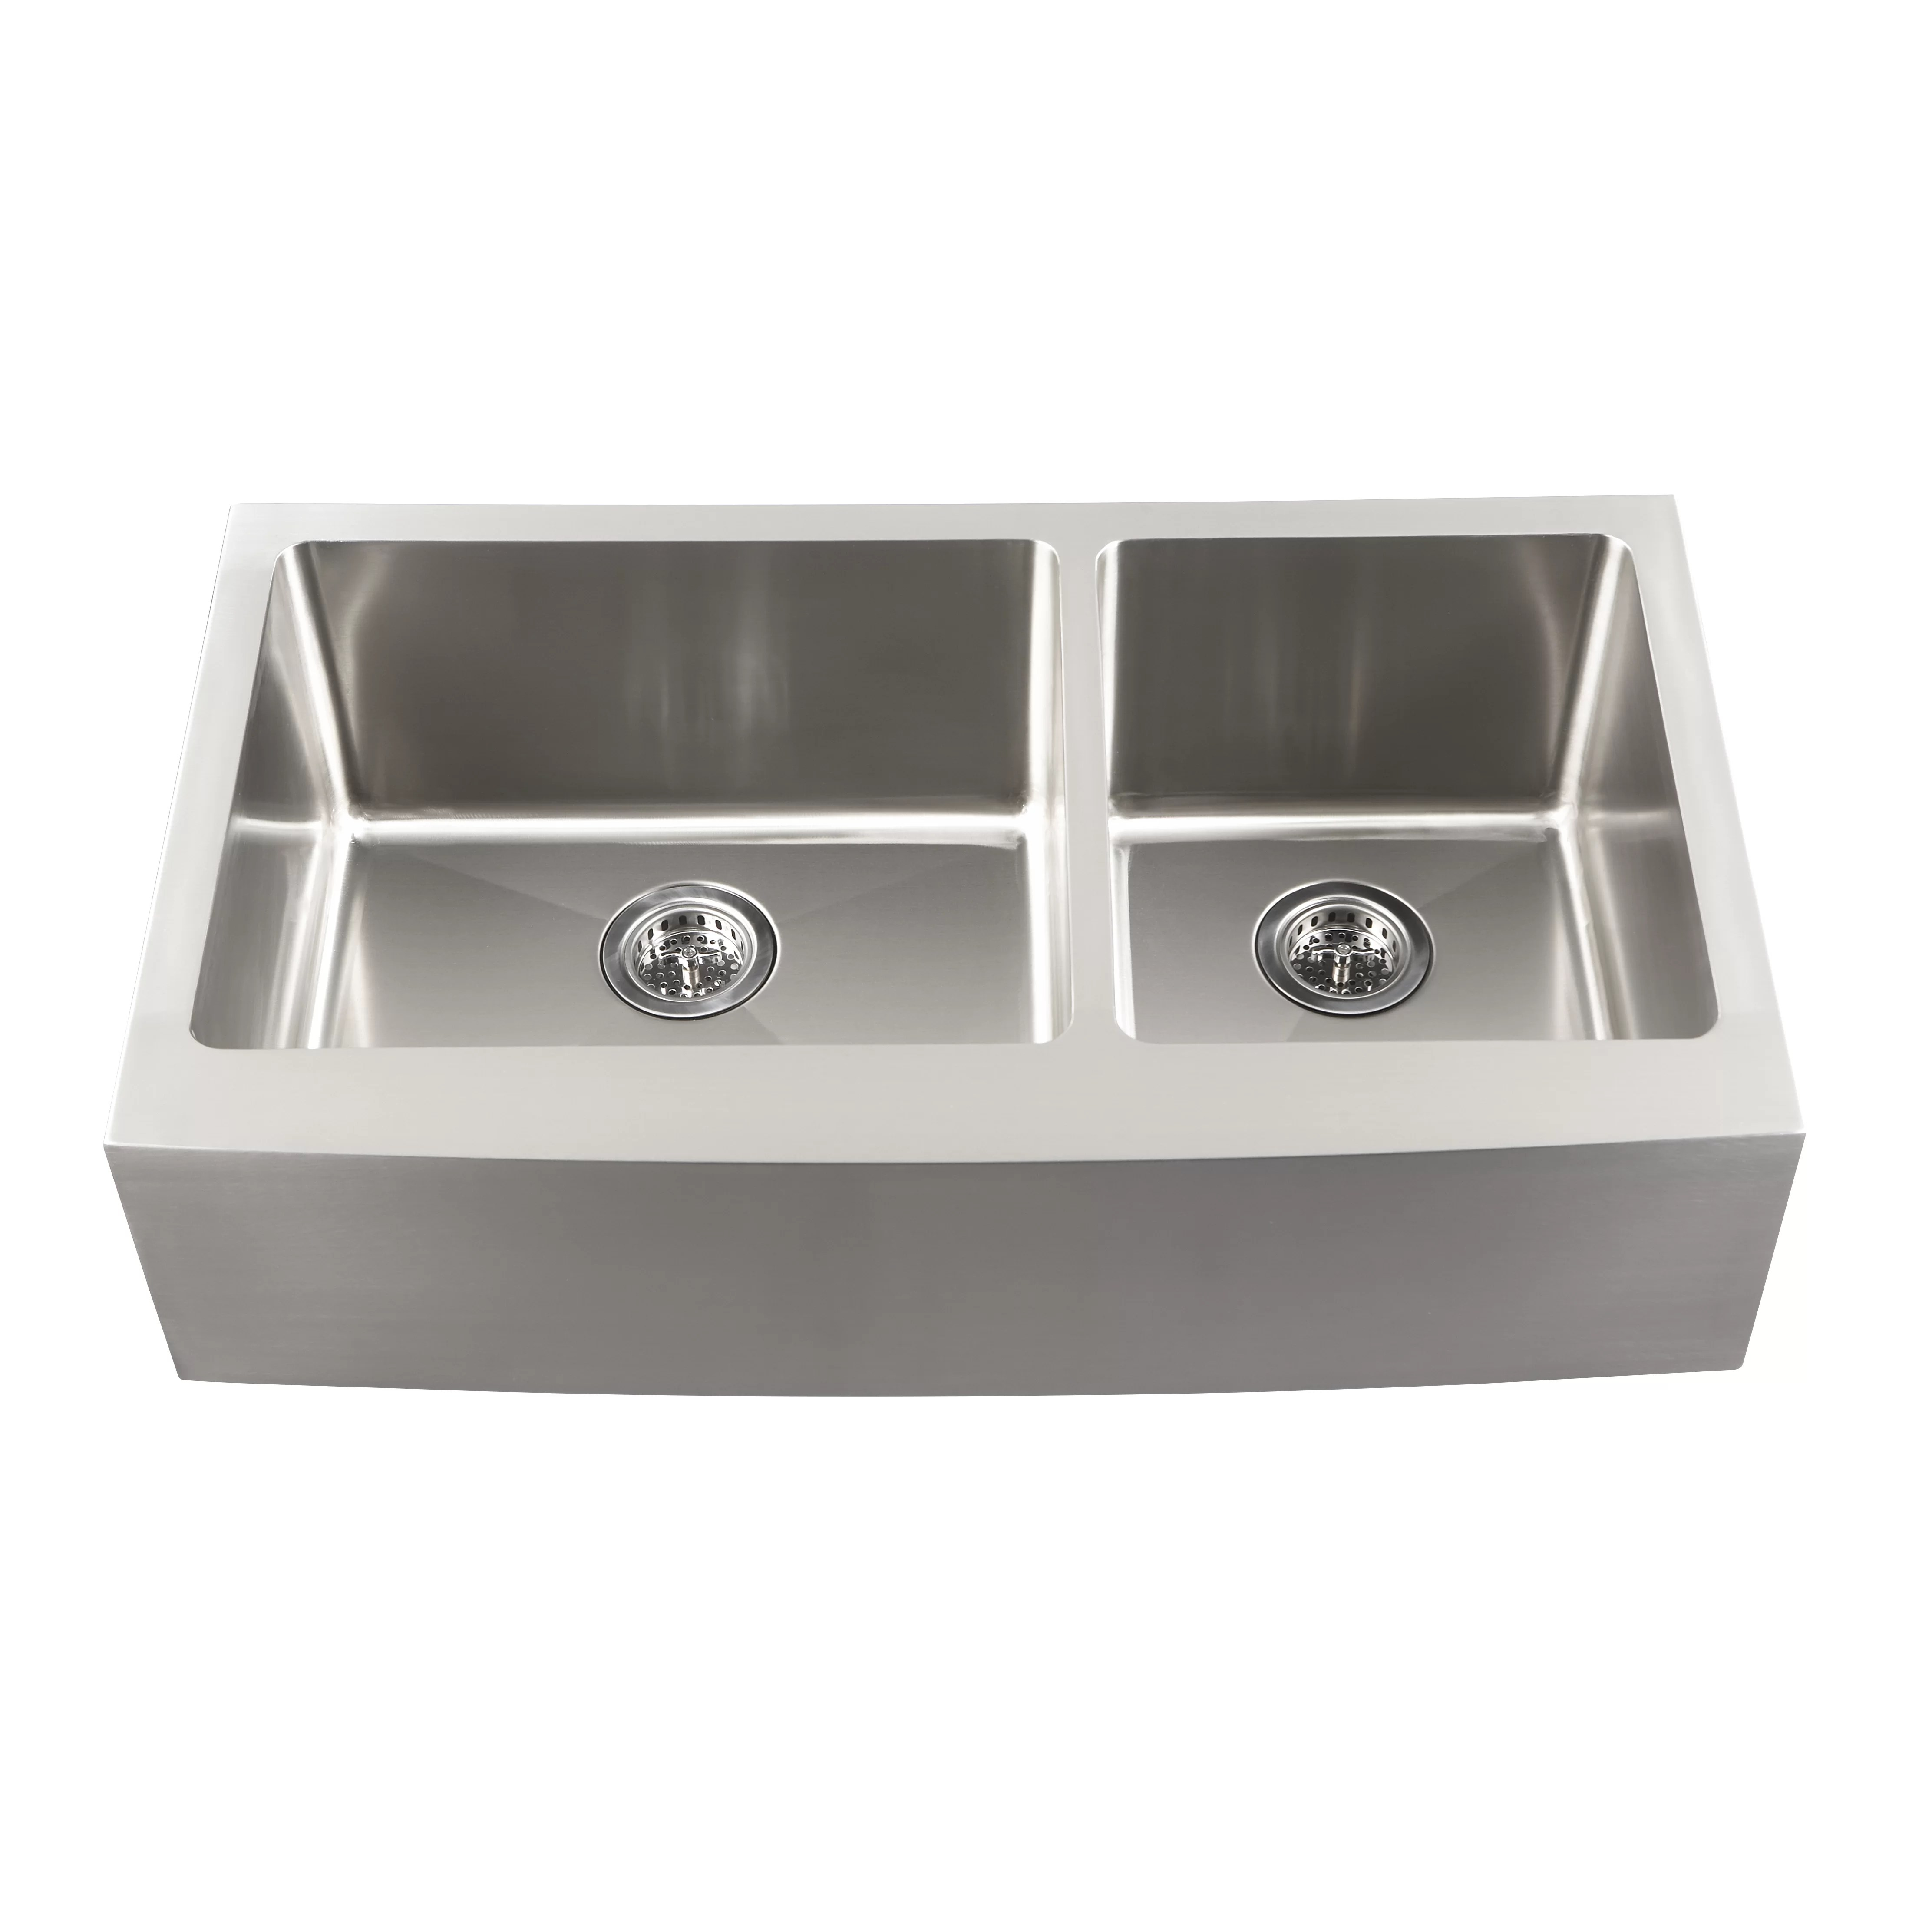 Overstock Farmhouse Sink Schon Farmhouse 36 Quot X 21 25 Quot Undermount Double Bowl